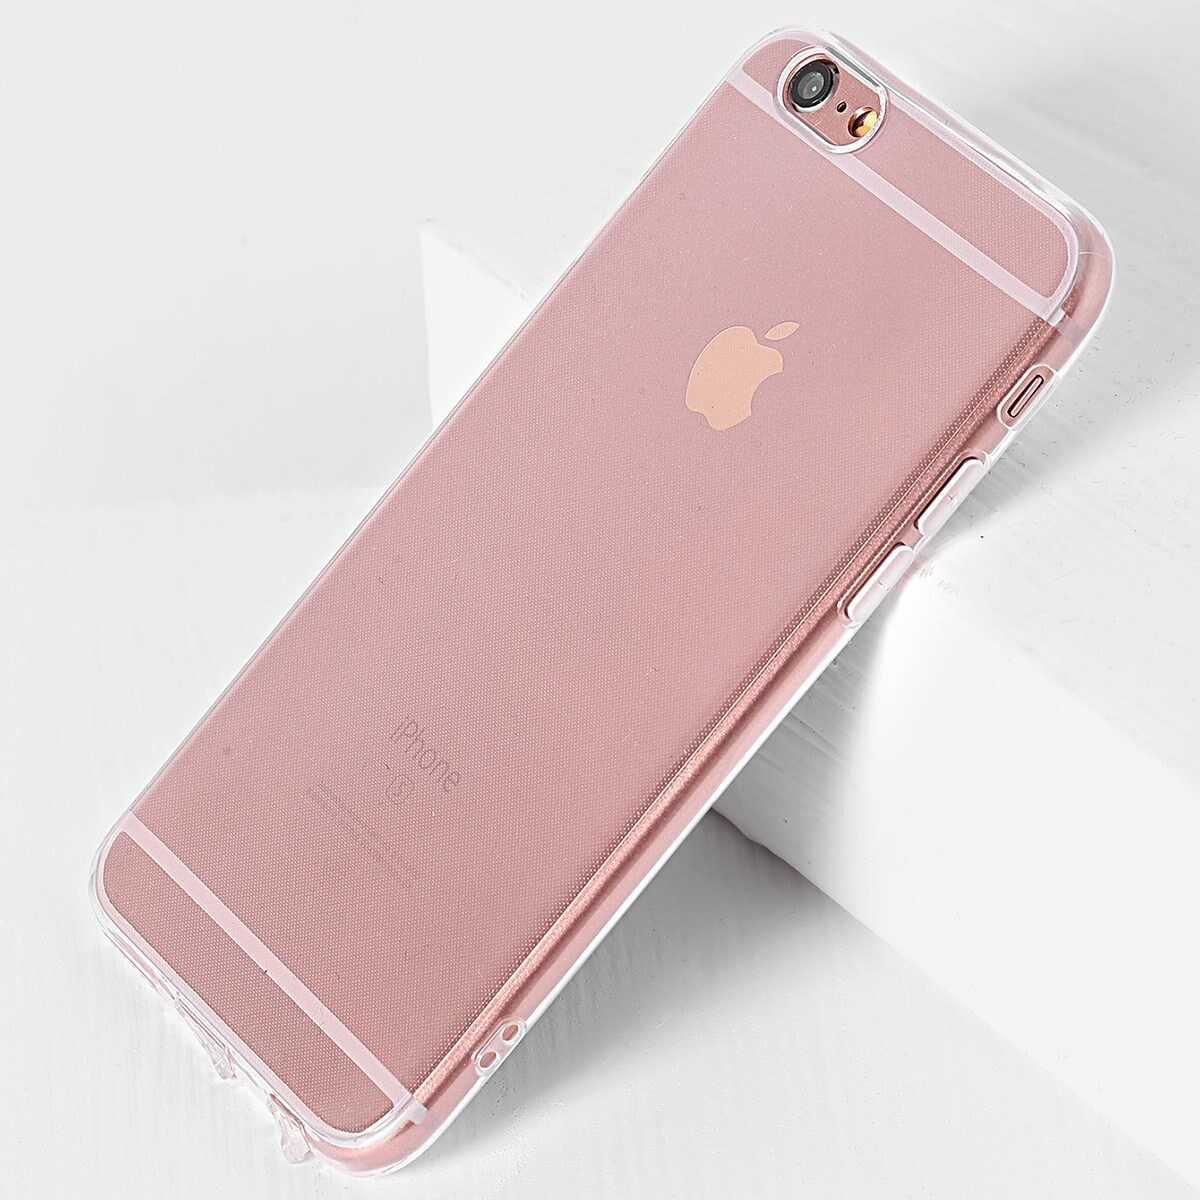 Clear Simple iPhone Case - Shein - GOOFASH